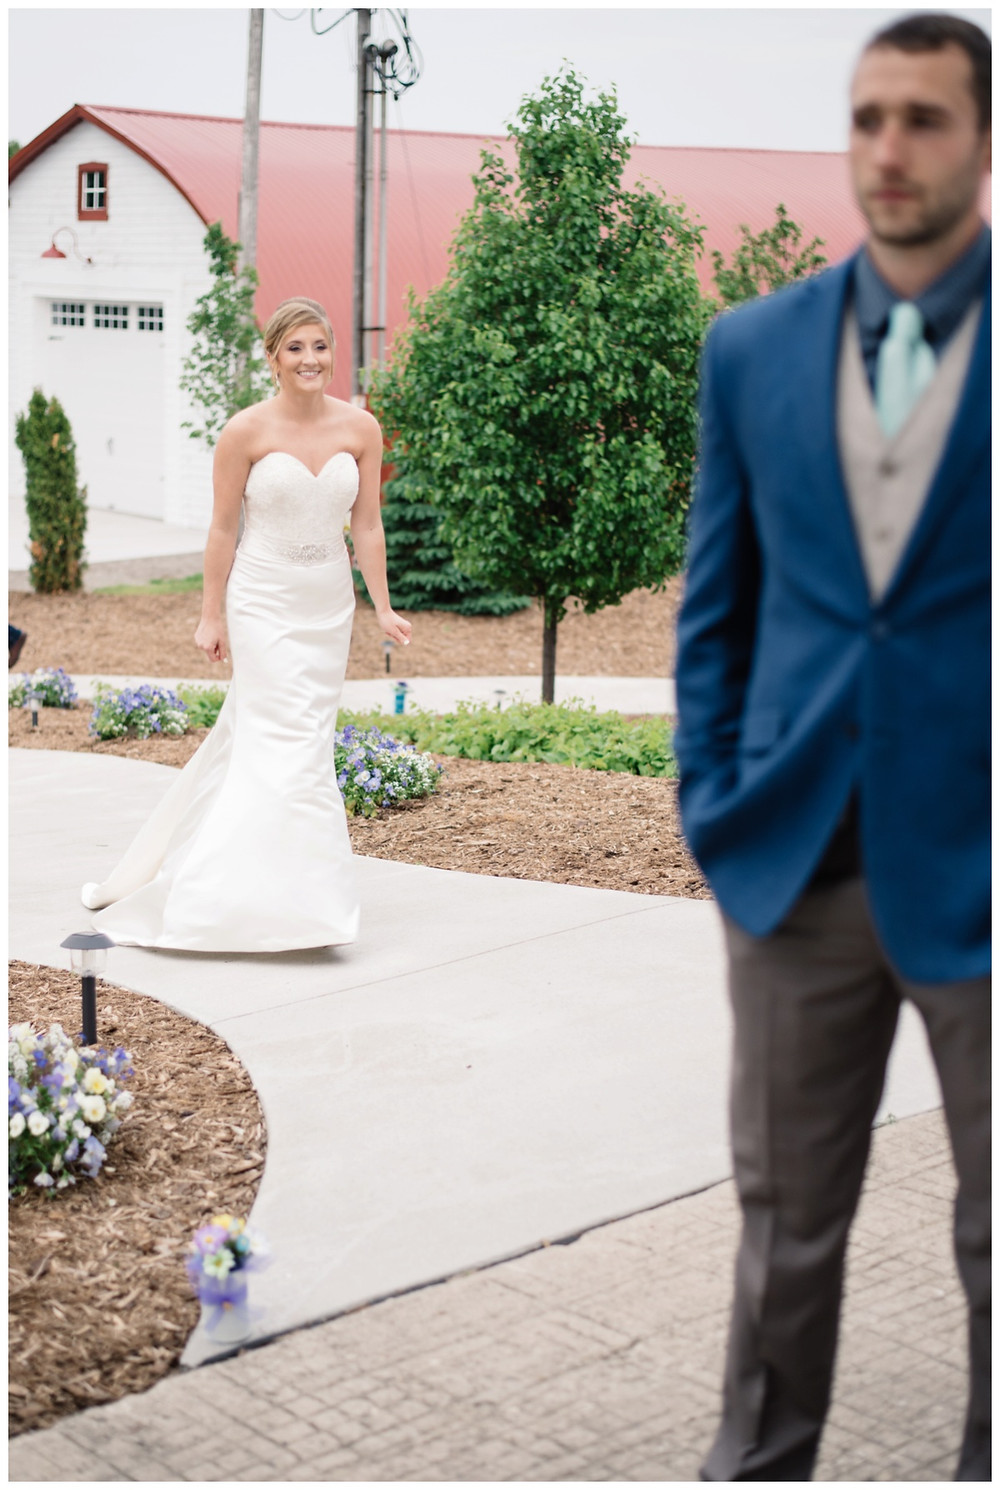 first-look-at-brighton-acres-wedding-by-appleton-wedding-photographer-kyra-rane-photography